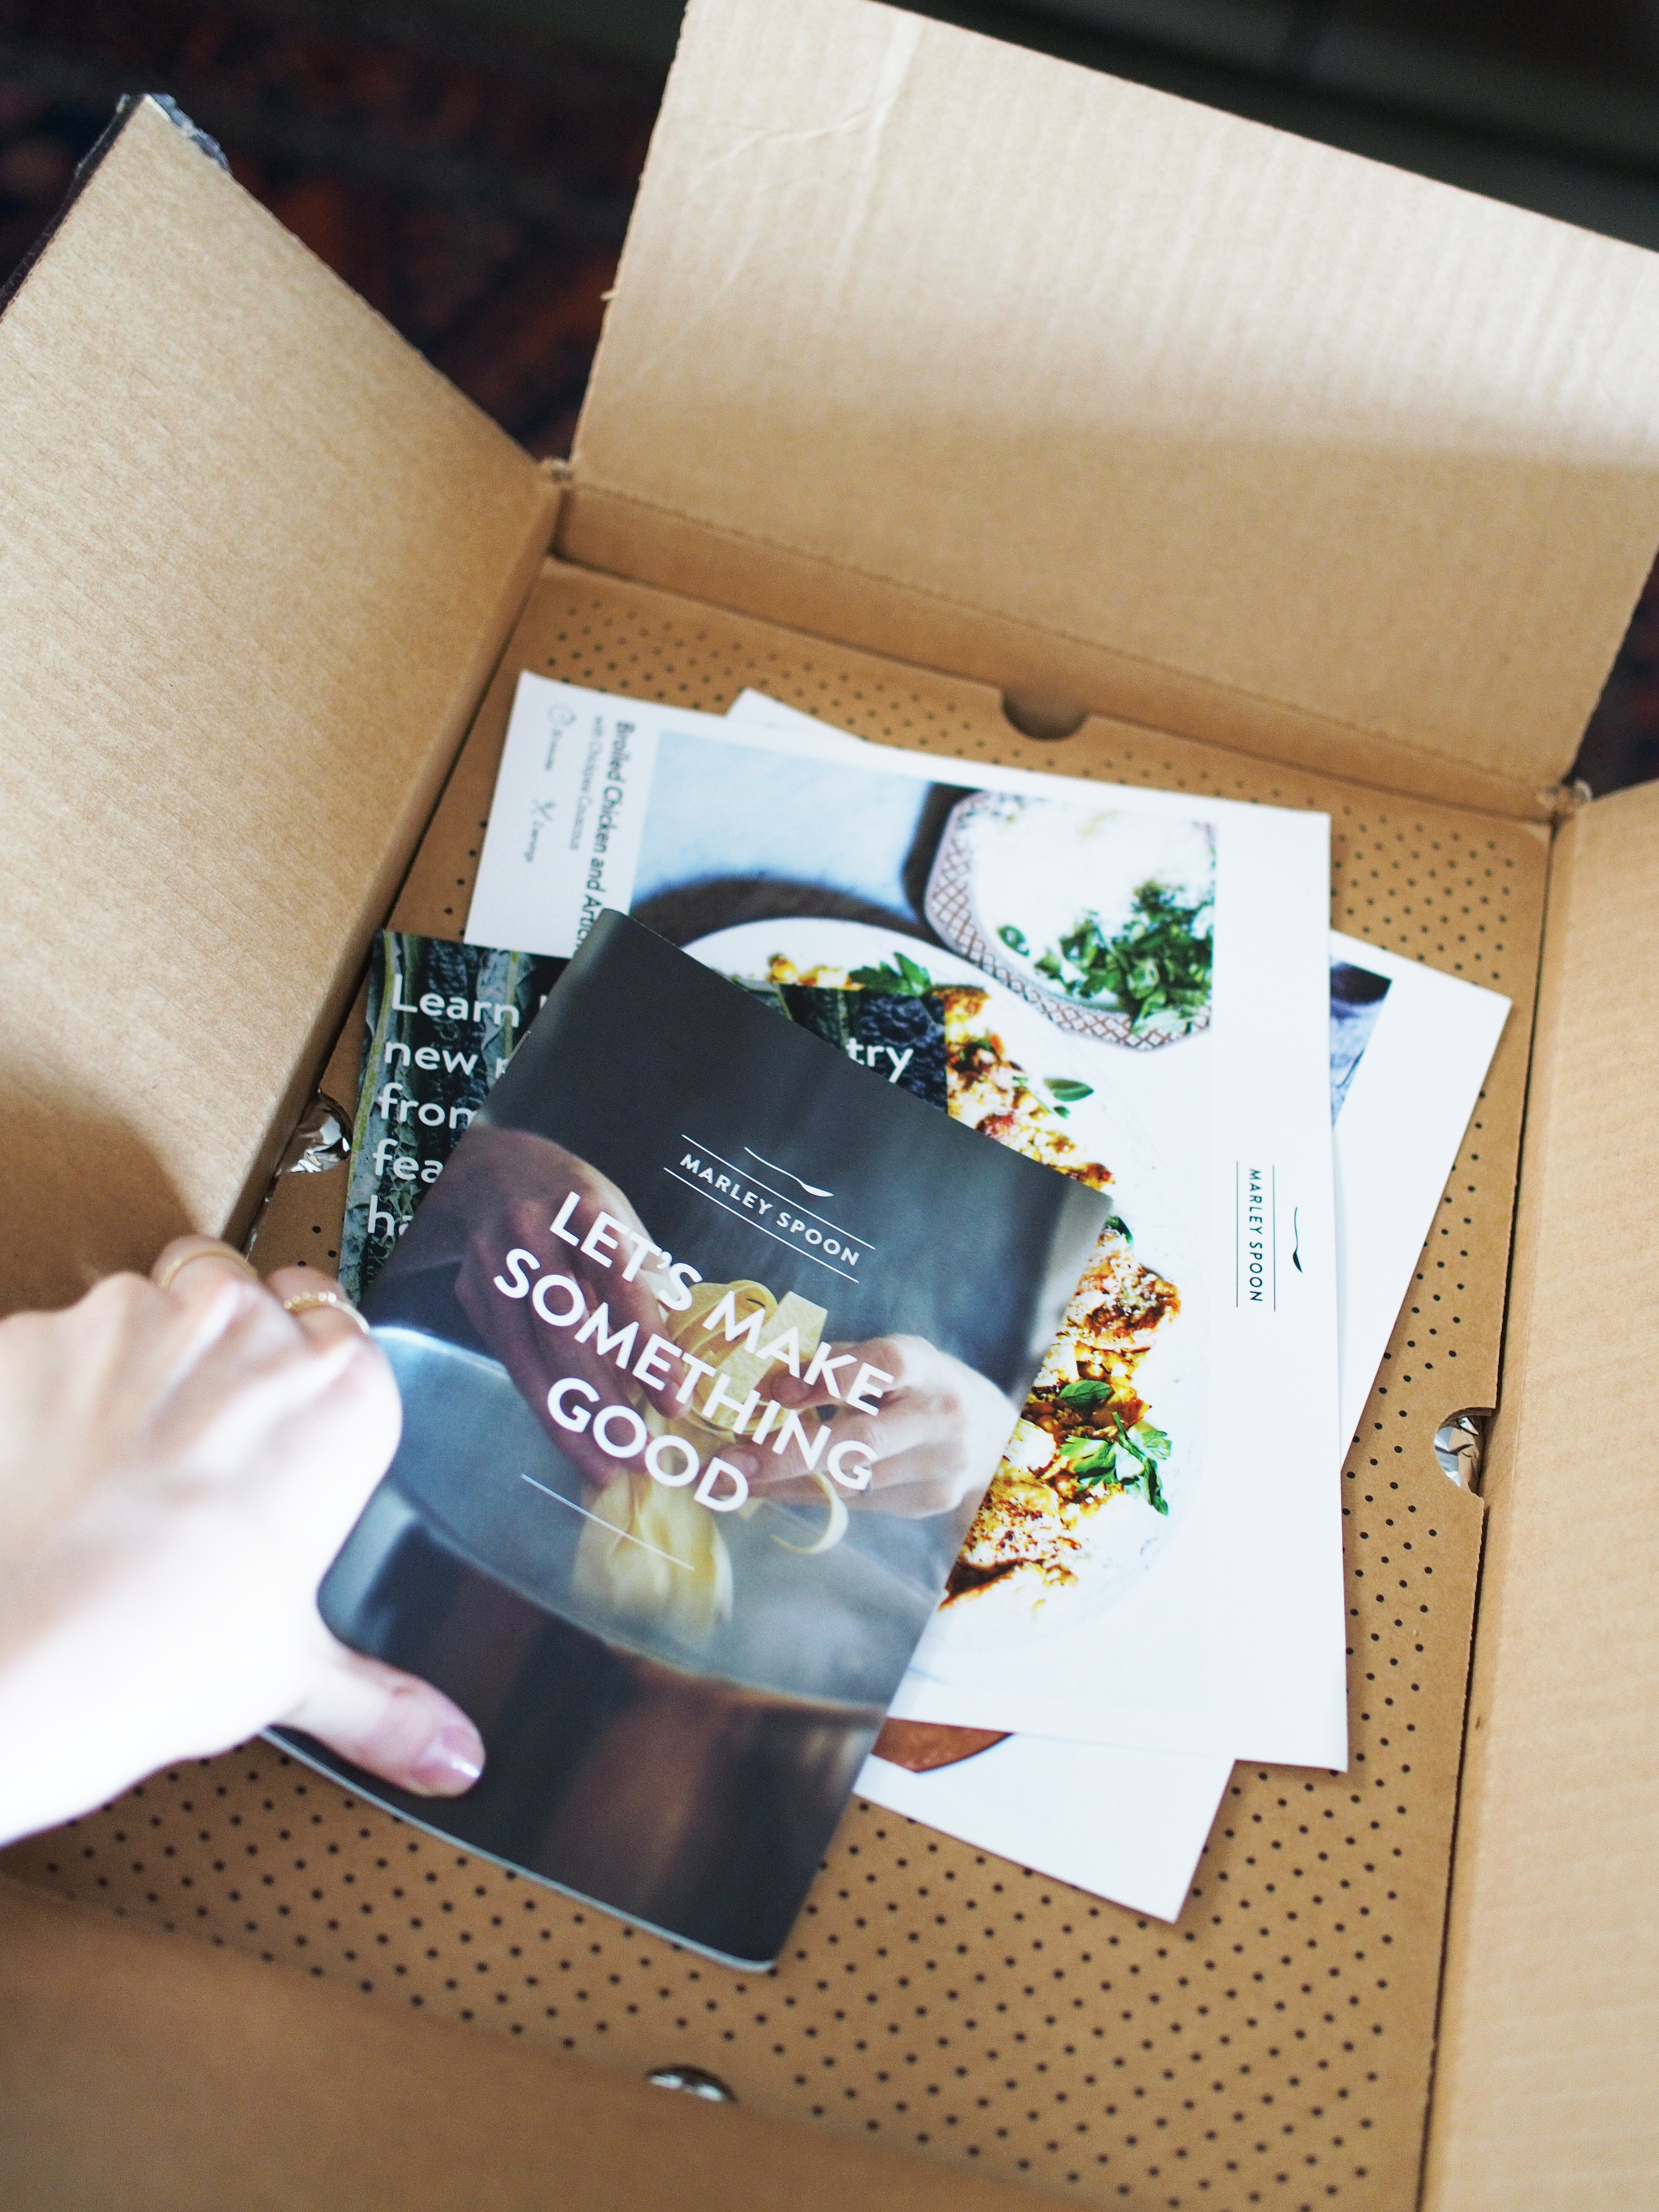 Cooking with Marley Spoon At Door Delivery Fresh Ingredients My Experience with Marley Spoon Taylr Anne www.taylranne.com